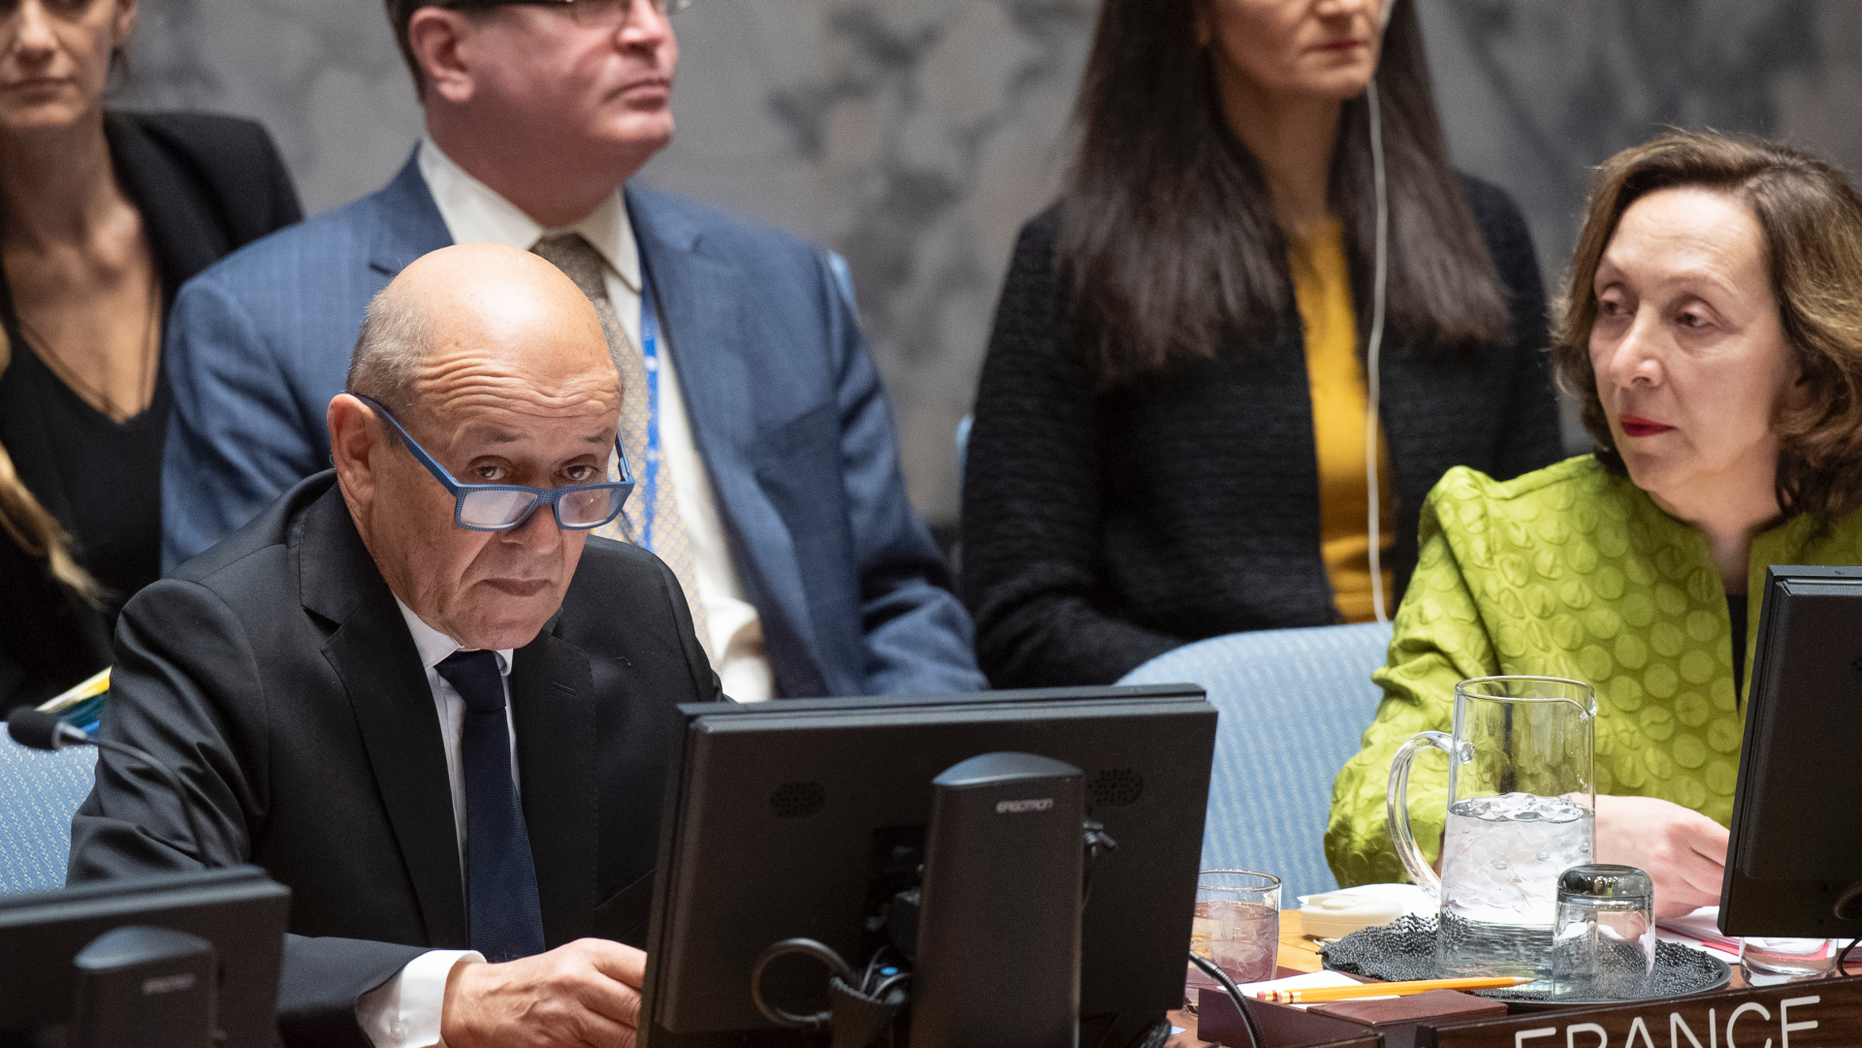 "Jean-Yves Le Drian, United Nations Security Council president, speaks at the UN headquarters about threats to international peace and security caused by terrorist acts, Thursday, March 28, 2019. The U.N. Security Council has unanimously adopted a resolution aimed at strengthening global efforts to combat the numerous and new ways that terrorist groups raise funds to finance their operations. The French-drafted resolution approved Thursday orders all countries to ensure that their domestic laws are sufficient to prosecute and penalize those responsible for directly or indirectly financing ""terrorist organizations or individual terrorists for any purpose."" At right is Hasmik Egian, Director of the Security Council Affairs Division of the Department of Political and Peacebuilding Affairs. (Eskinder Debebe/United Nations via AP)"